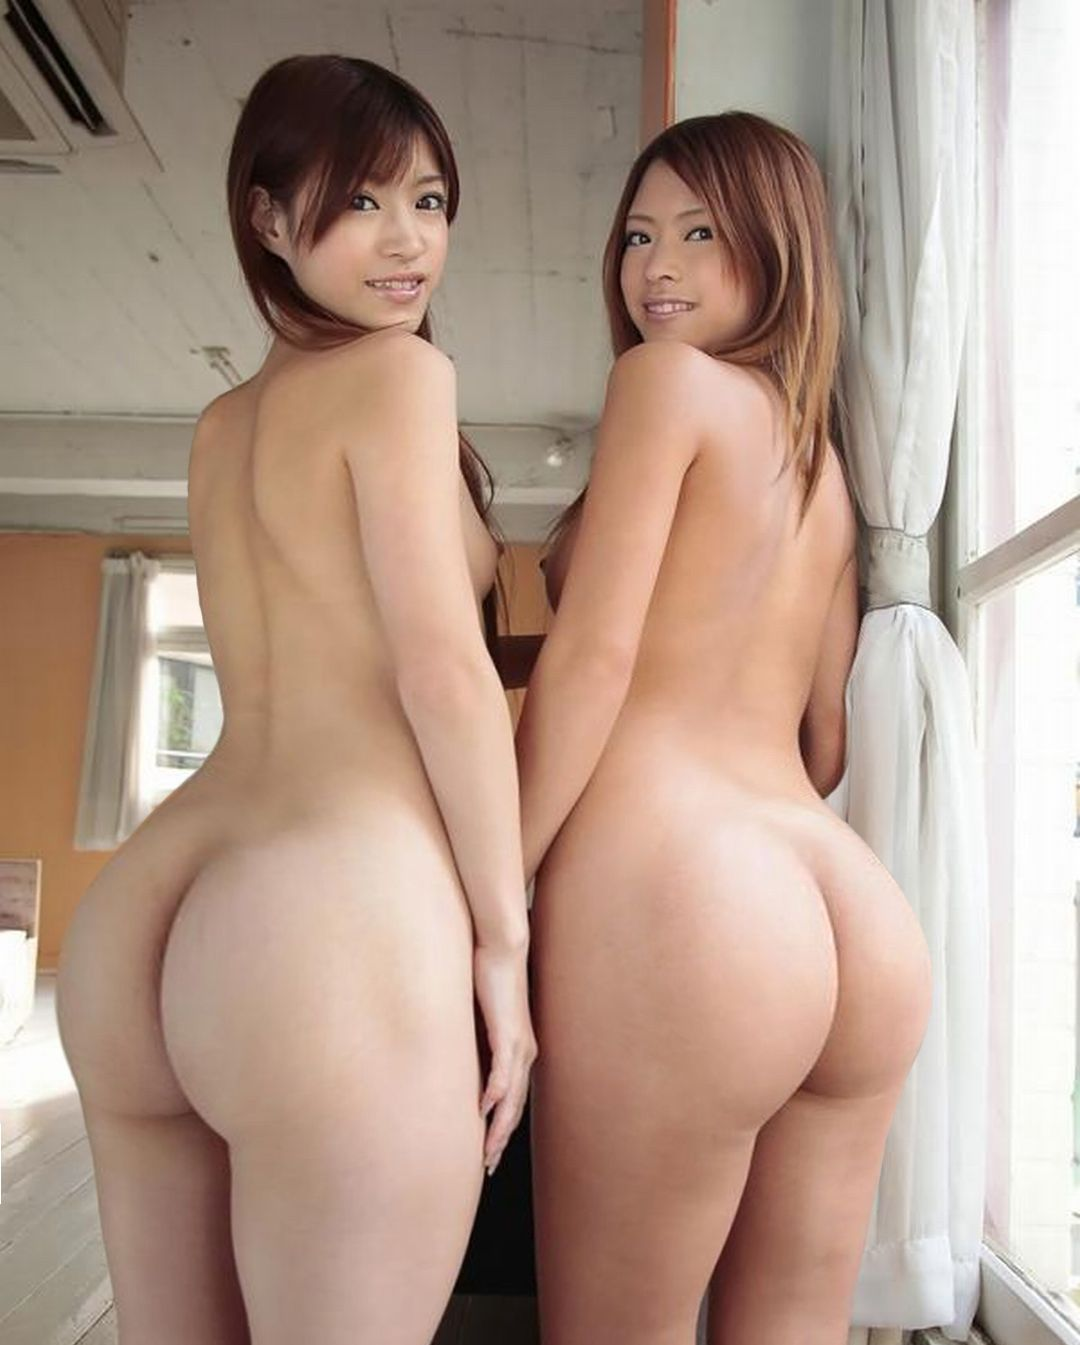 Buster recommendet buttocks Asian nude with nice girl